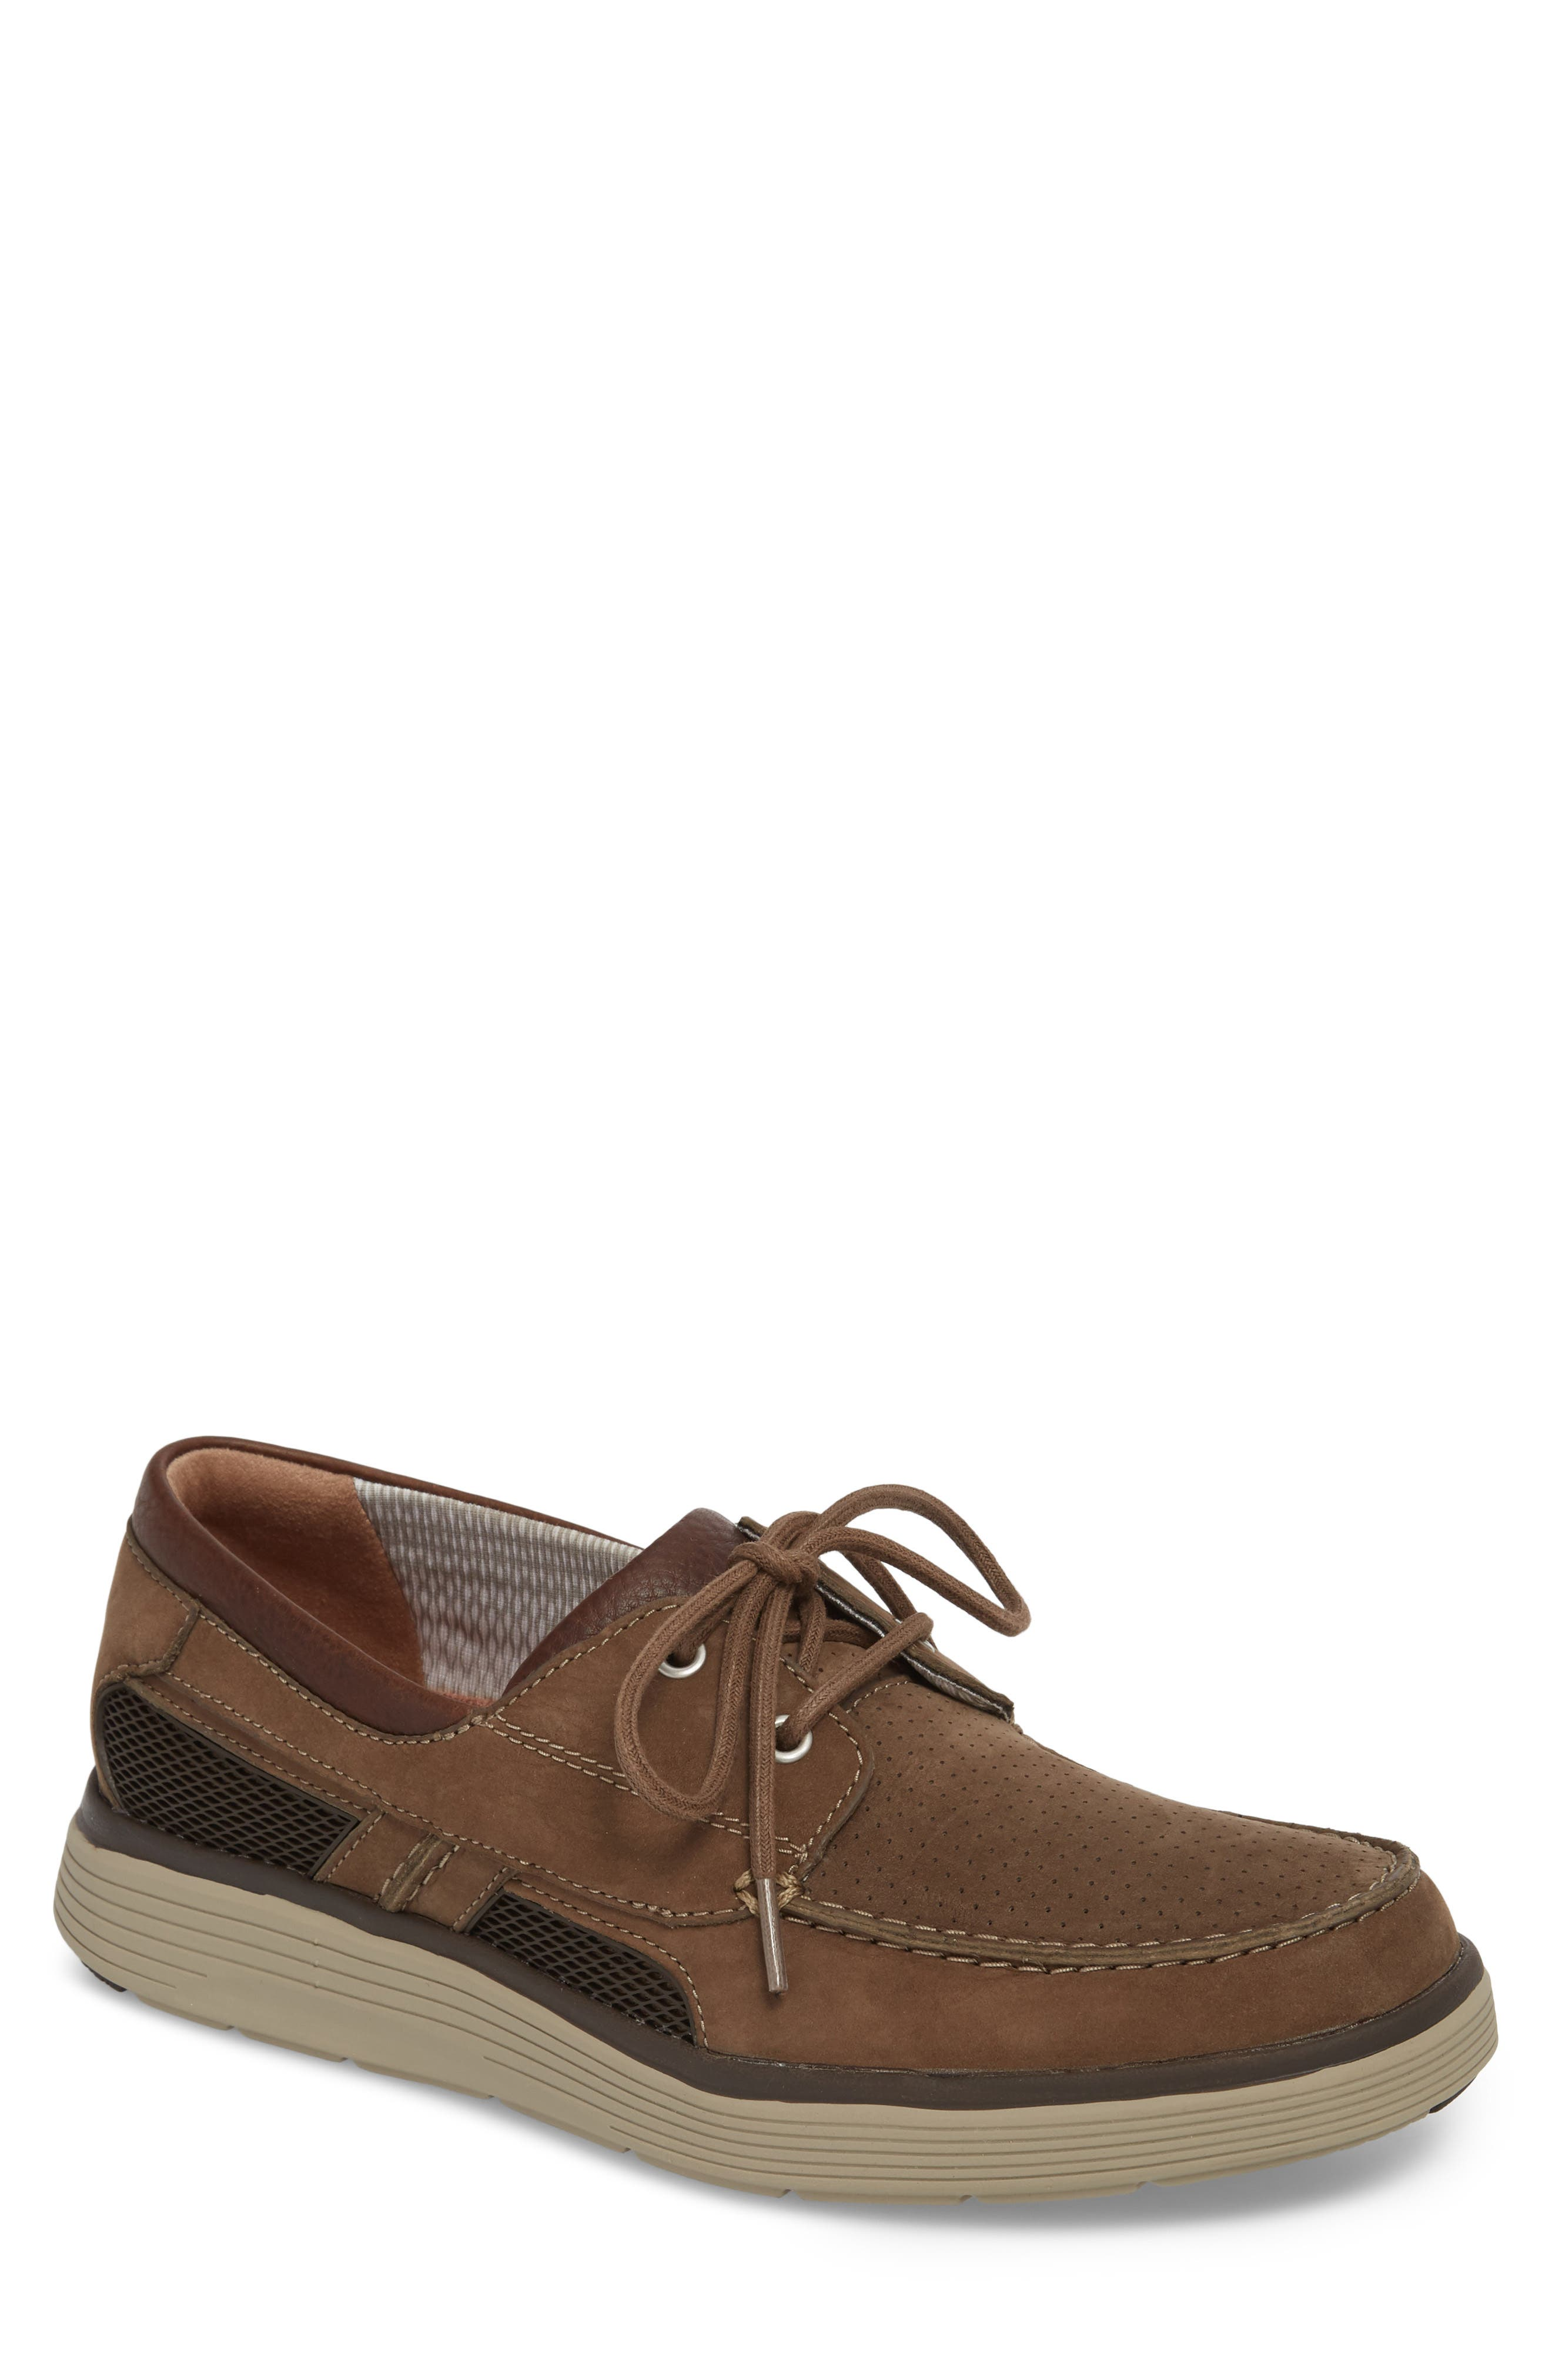 Clarks<sup>®</sup> Unabobe Step Boat Shoe,                             Main thumbnail 1, color,                             Olive Nubuck